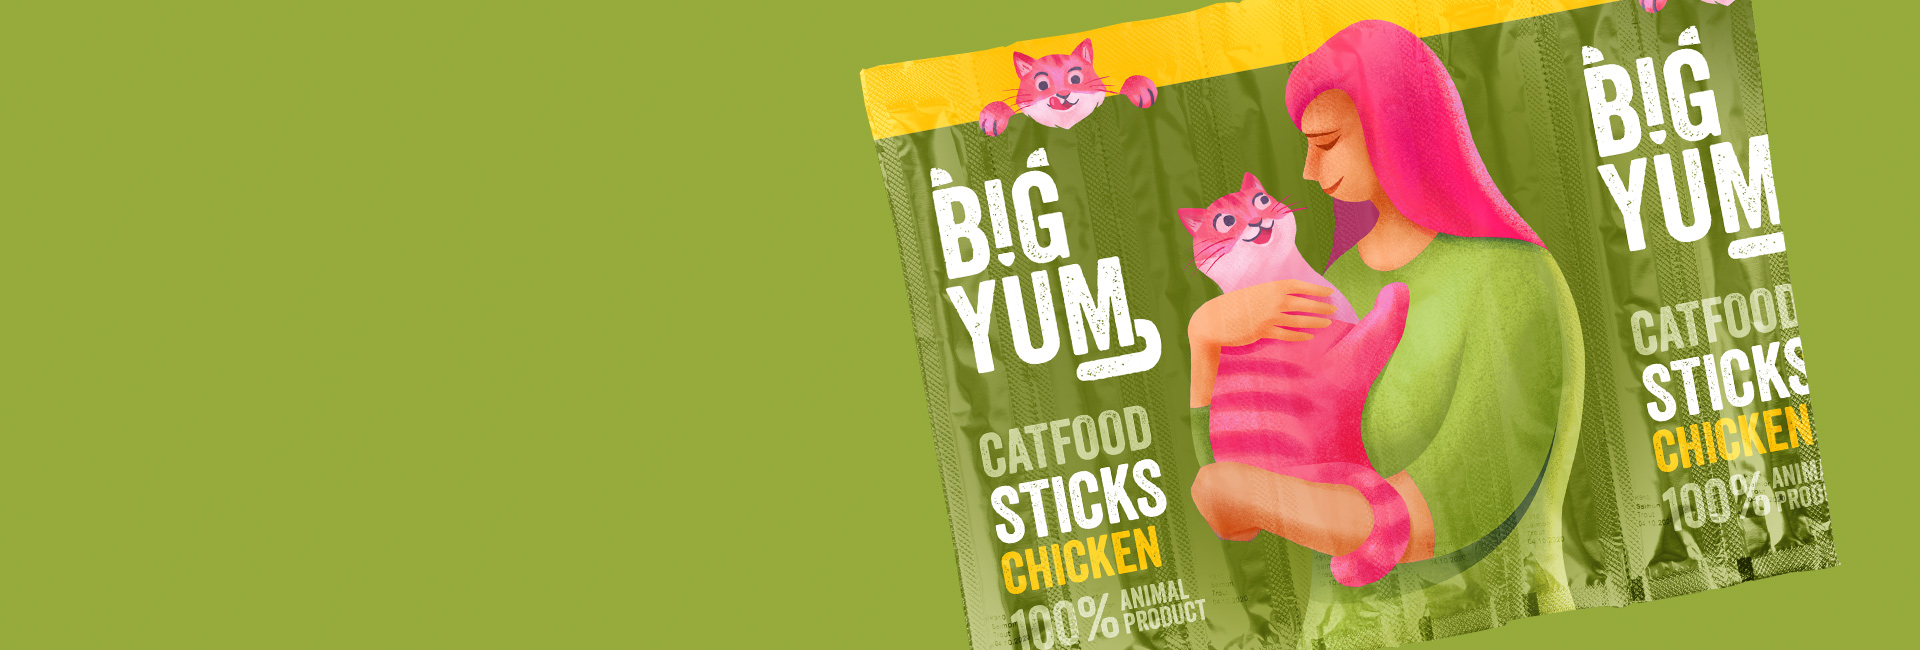 cat food sticks packaging intro